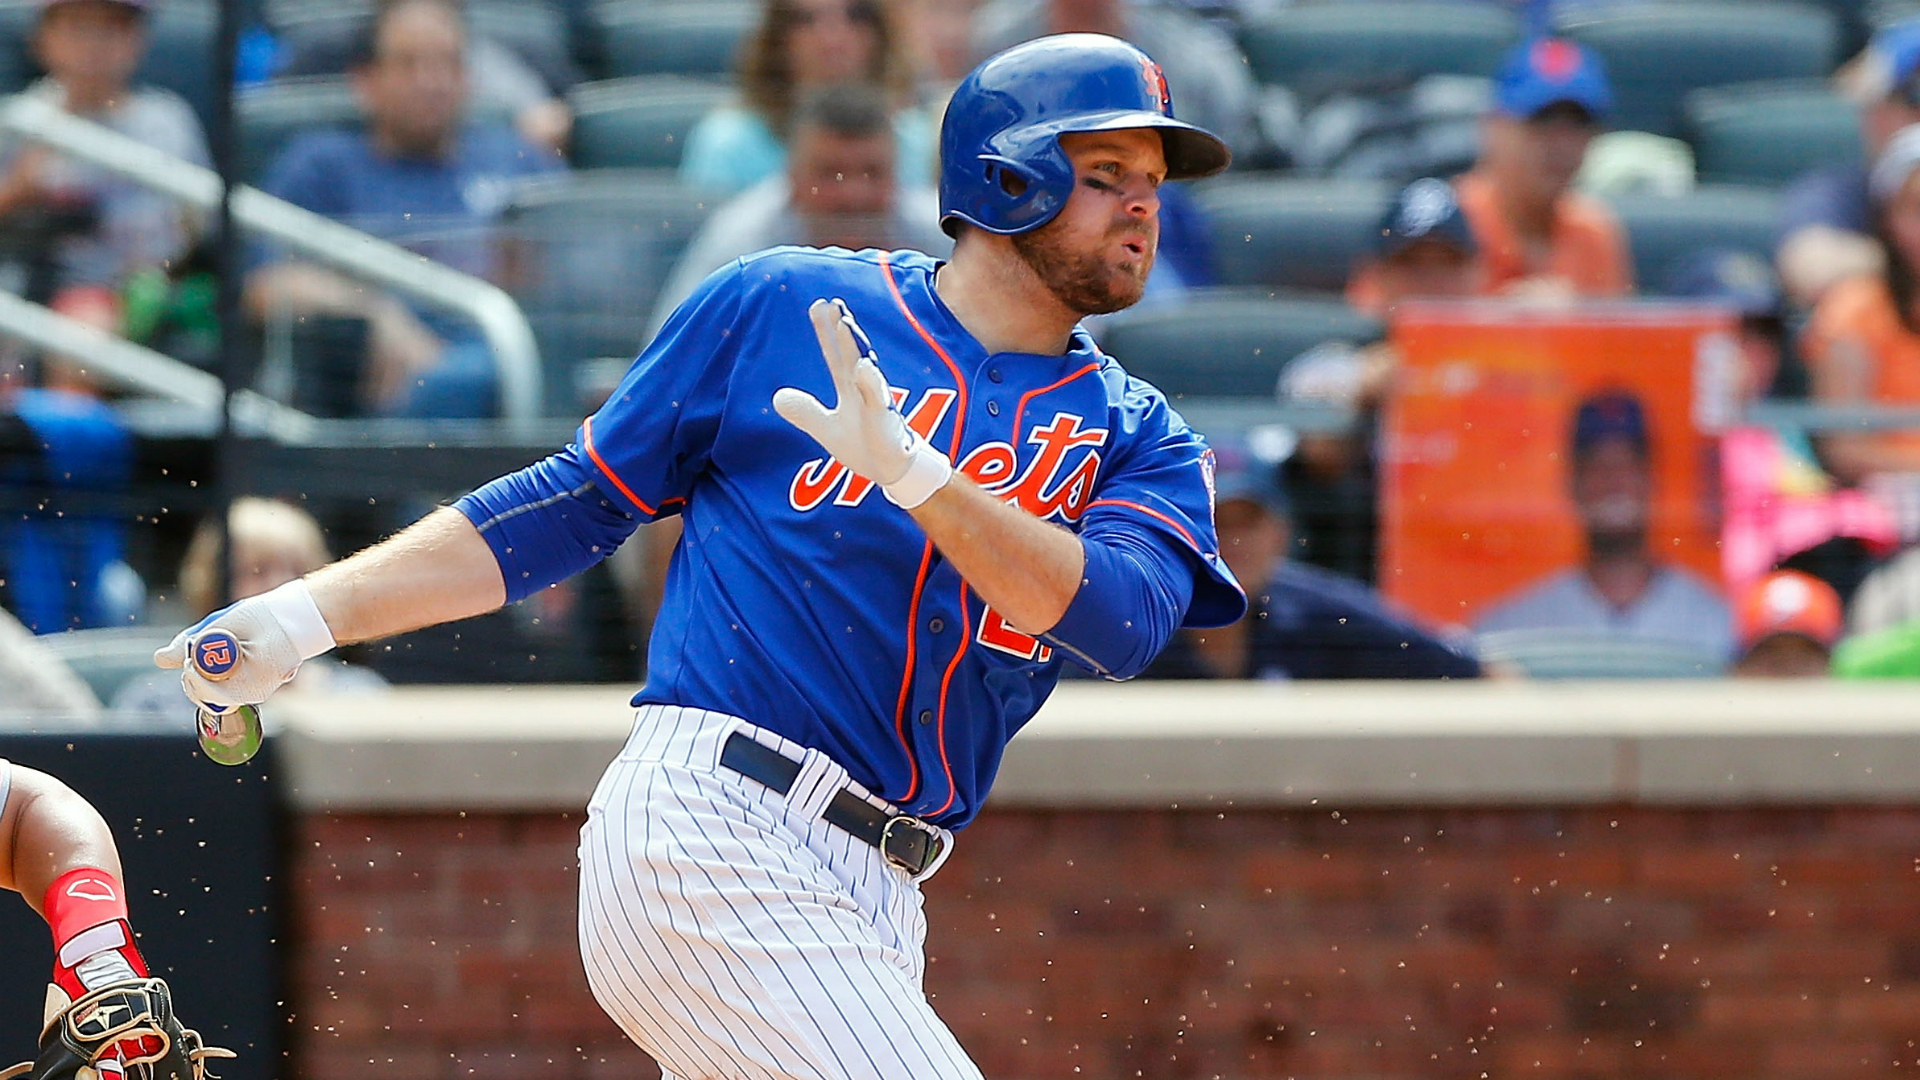 MLB Trade rumors: Mets trade Lucas Duda to Rays